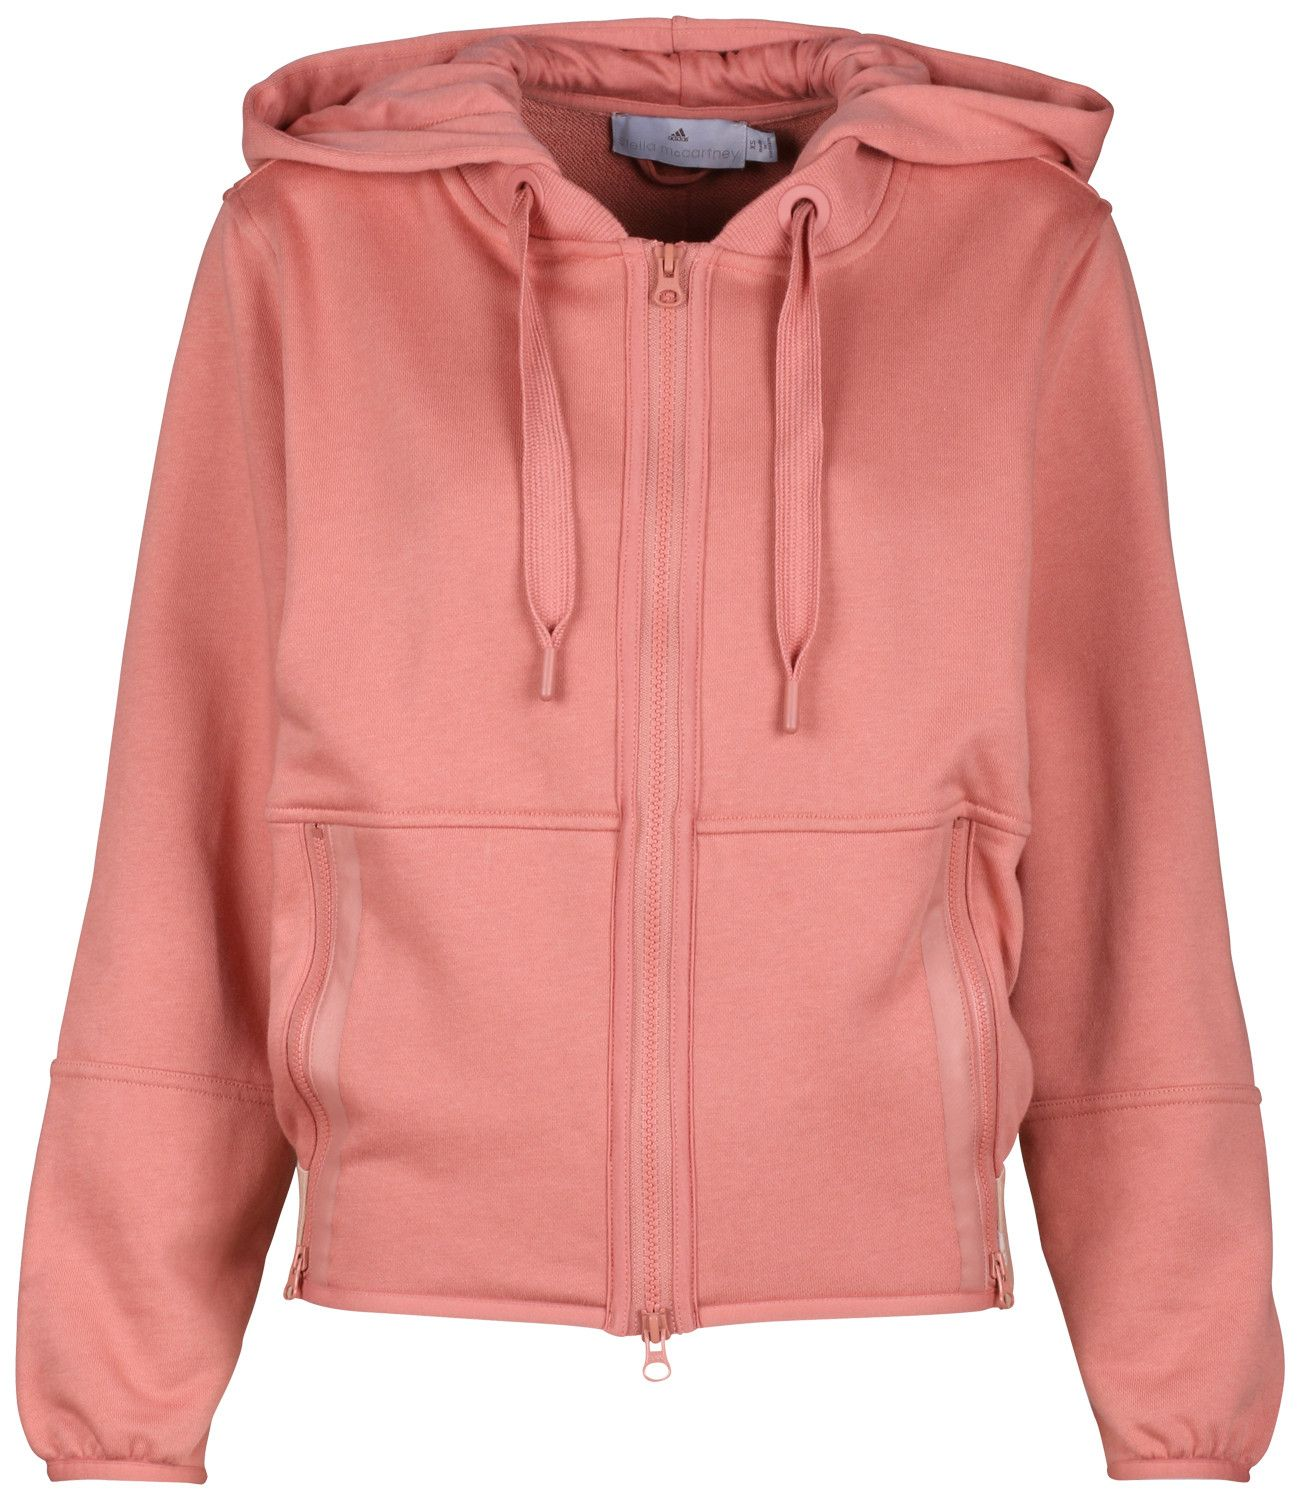 Trainingsjacke von ADIDAS BY STELLA MCCARTNEY